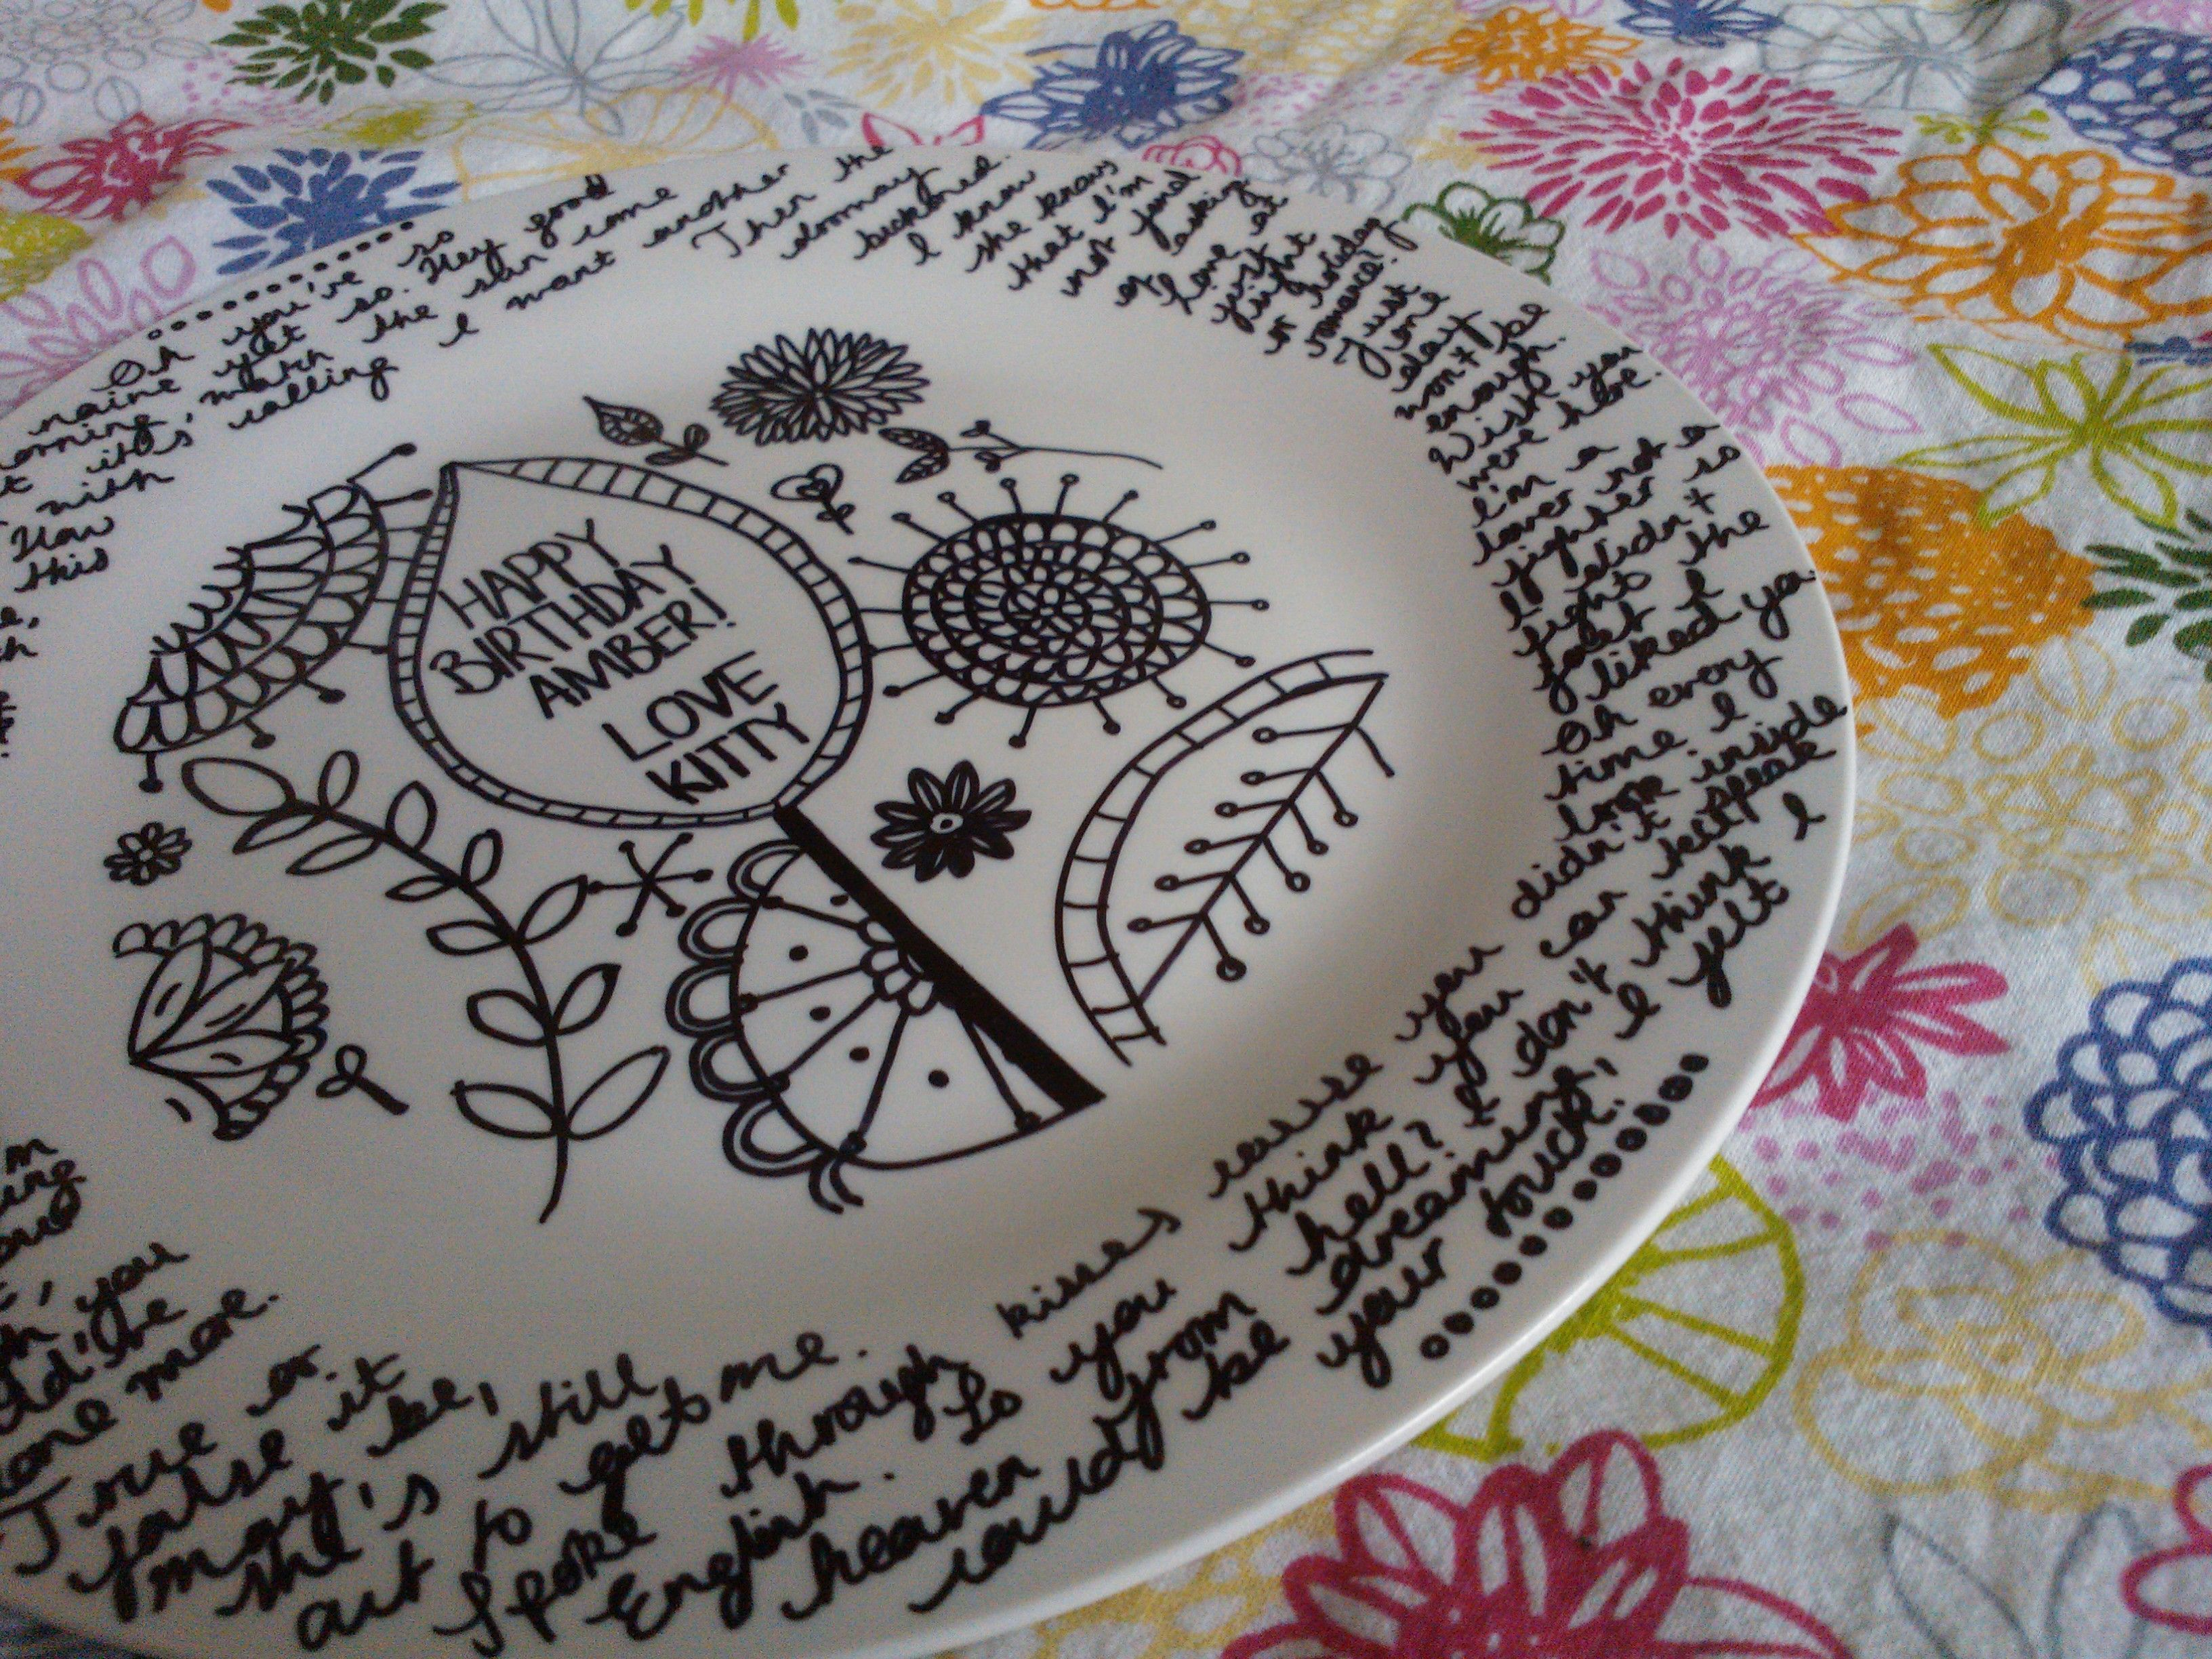 sharpie+plate+lyrics=thoughtful birthday present! #sharpieplates sharpie+plate+lyrics=thoughtful birthday present! #sharpieplates sharpie+plate+lyrics=thoughtful birthday present! #sharpieplates sharpie+plate+lyrics=thoughtful birthday present! #sharpieplates sharpie+plate+lyrics=thoughtful birthday present! #sharpieplates sharpie+plate+lyrics=thoughtful birthday present! #sharpieplates sharpie+plate+lyrics=thoughtful birthday present! #sharpieplates sharpie+plate+lyrics=thoughtful birthday pres #sharpieplates